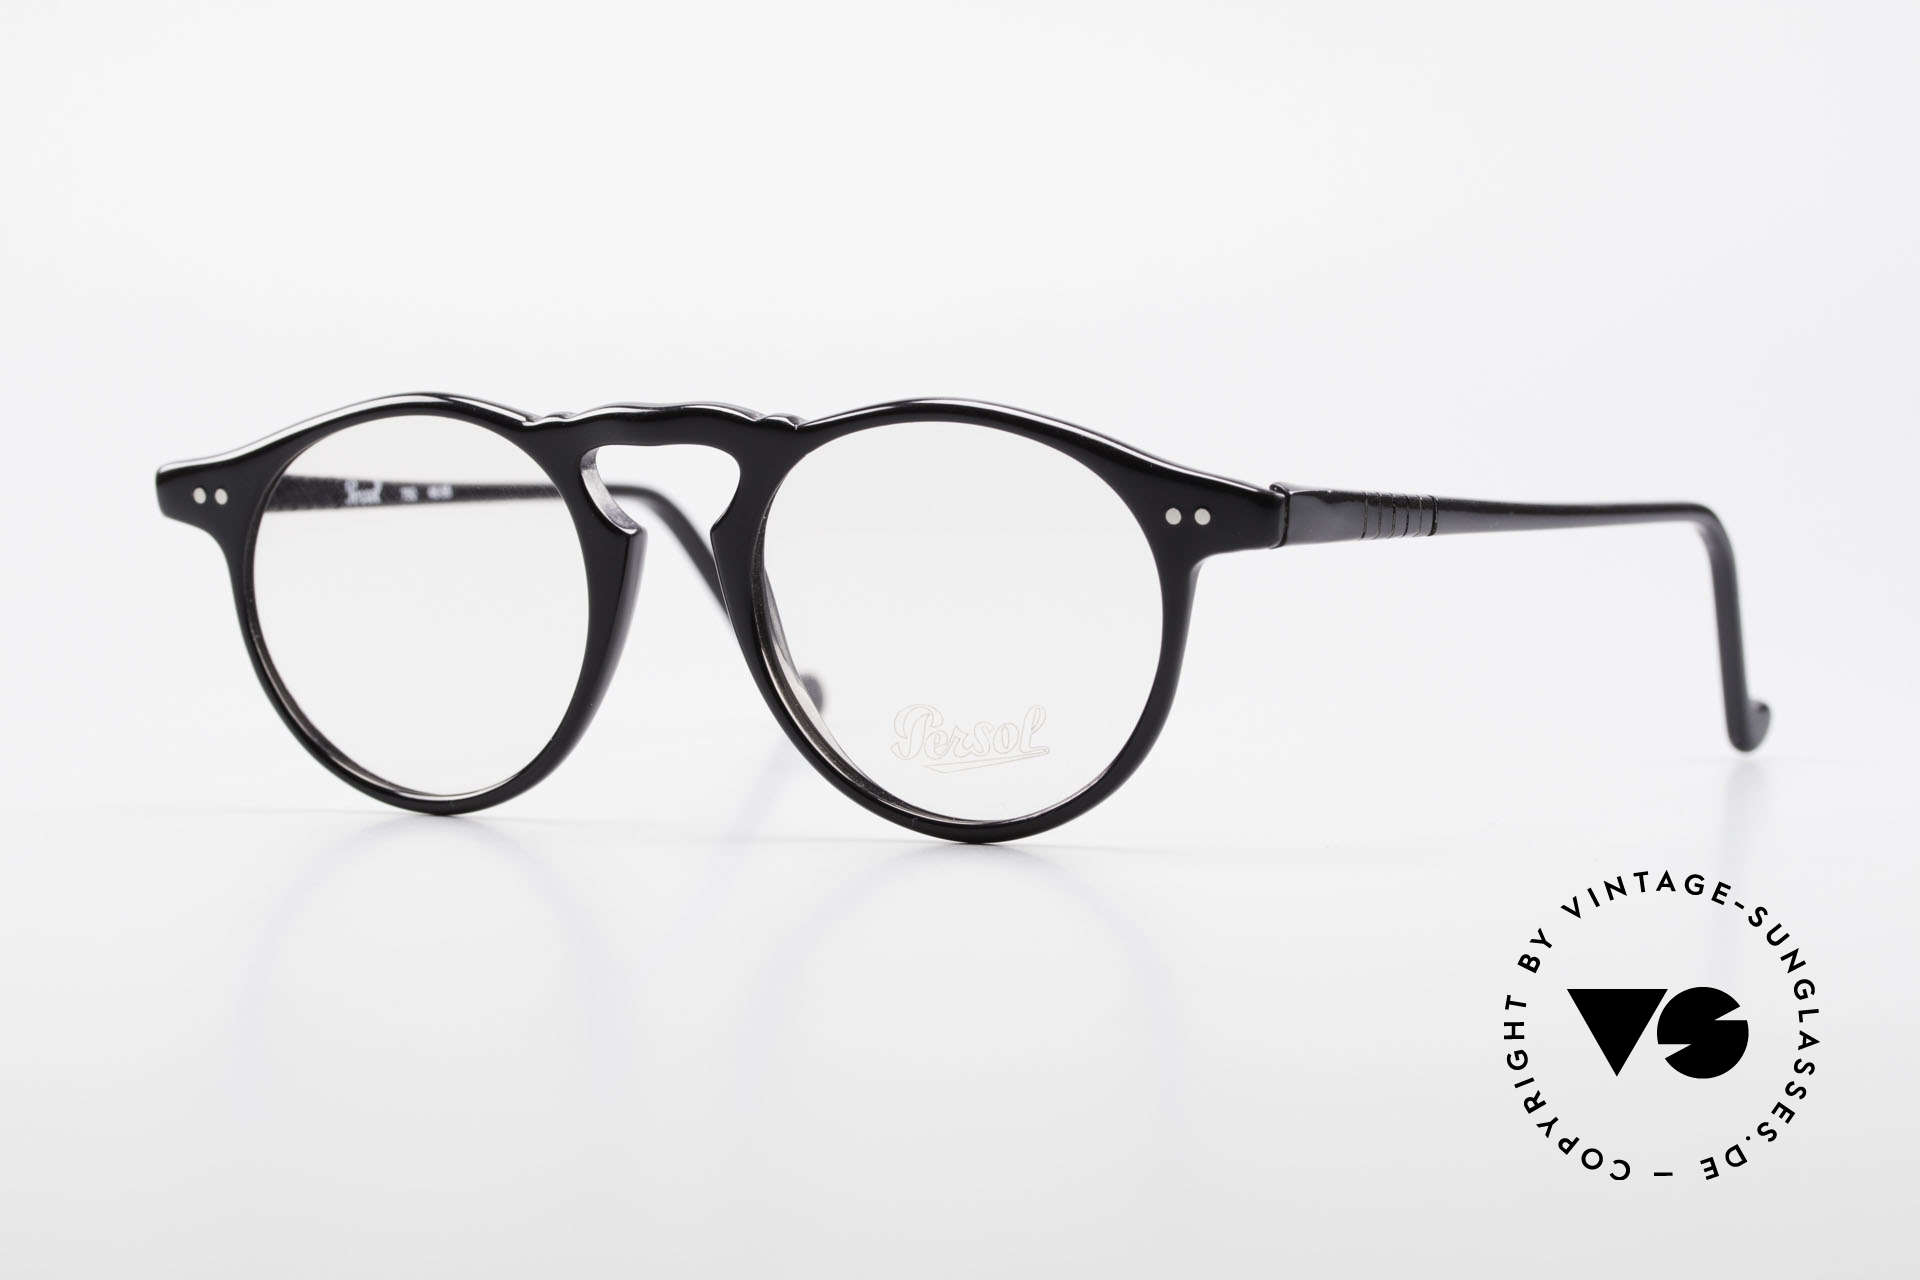 Persol 750 Ratti 80's Vintage Panto Eyeglasses, classic vintage eyeglass-frame by PERSOL RATTI, Made for Men and Women